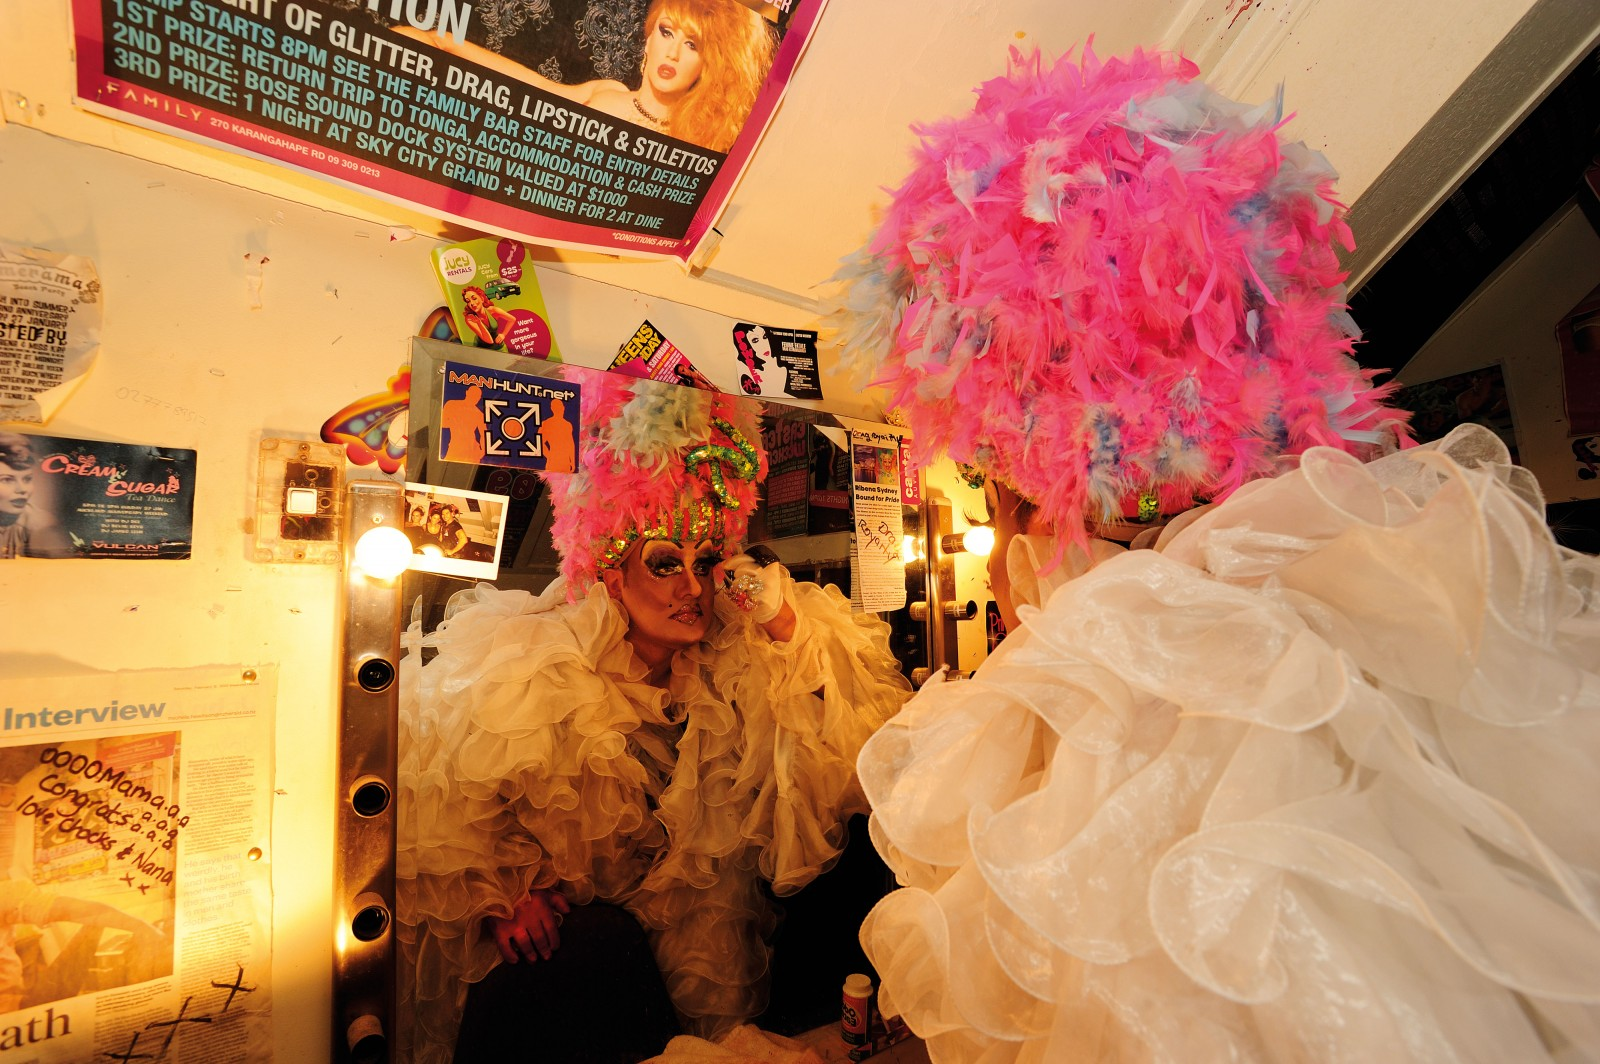 Kevin Dunseath, aka Drag Queen 'Miss Ribena', makes last-minute touchups to his appearance in a backstage dressing room at the Family Bar before heading on stage for the Friday night drag show. On Wednesday nights he hosts Queery Karaoke nights at the popular gay venue.